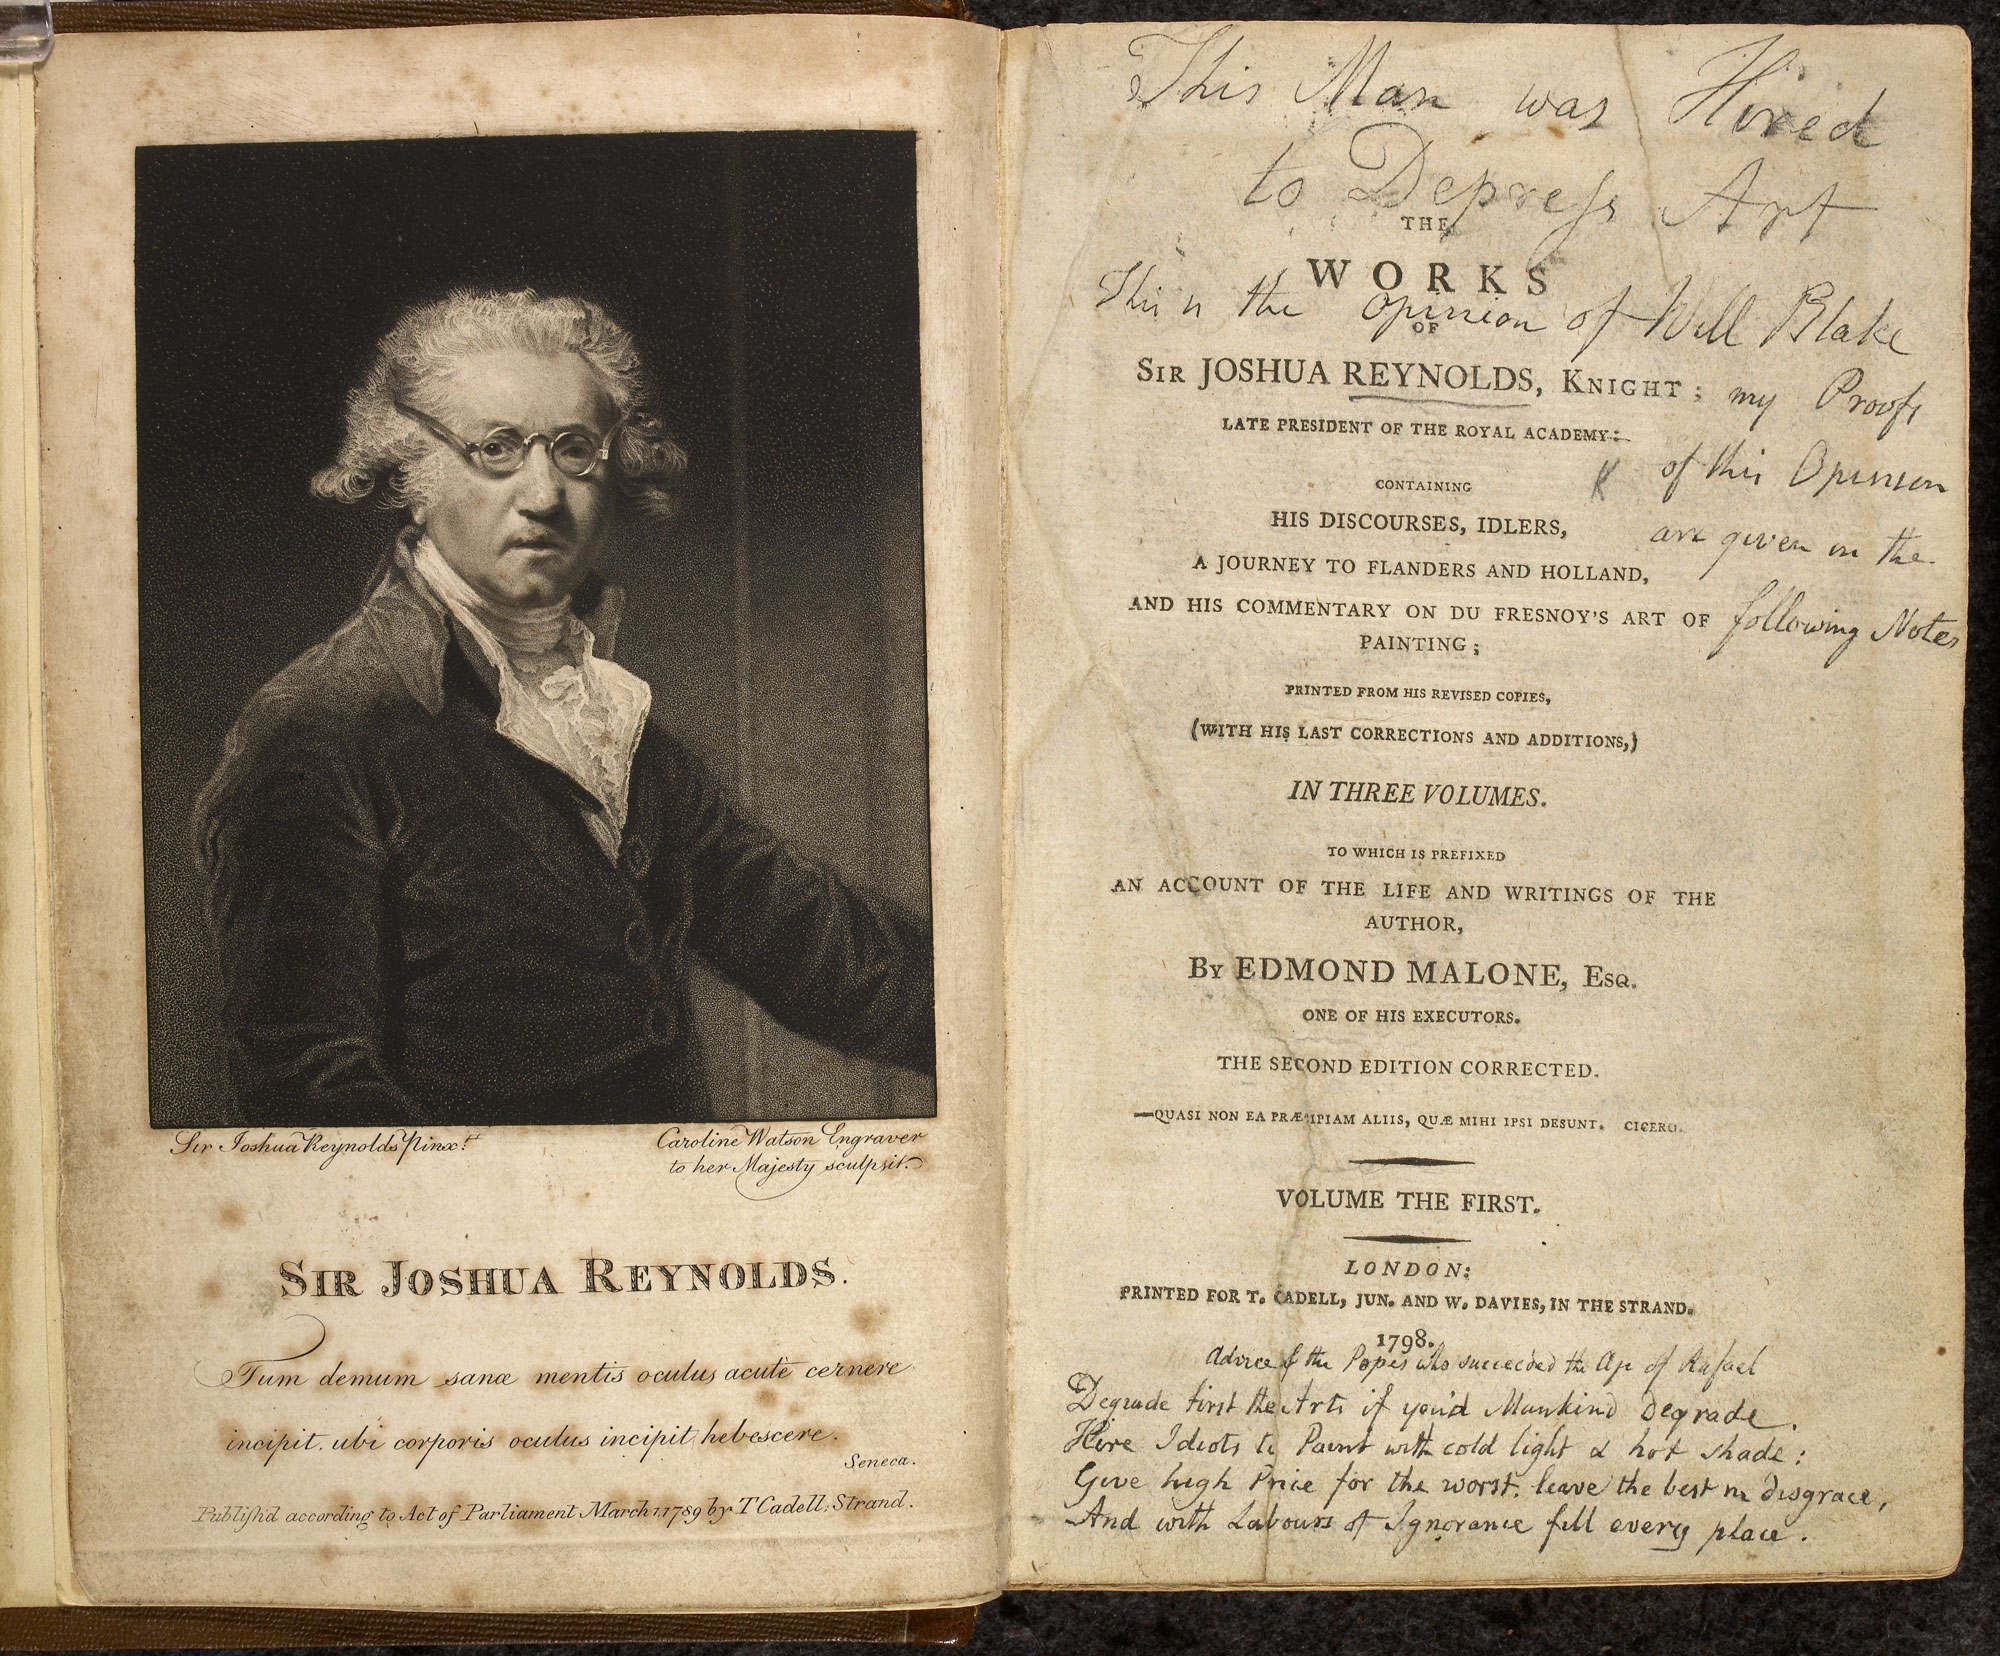 The Works of Sir Joshua Reynolds with William Blake's manuscript notes